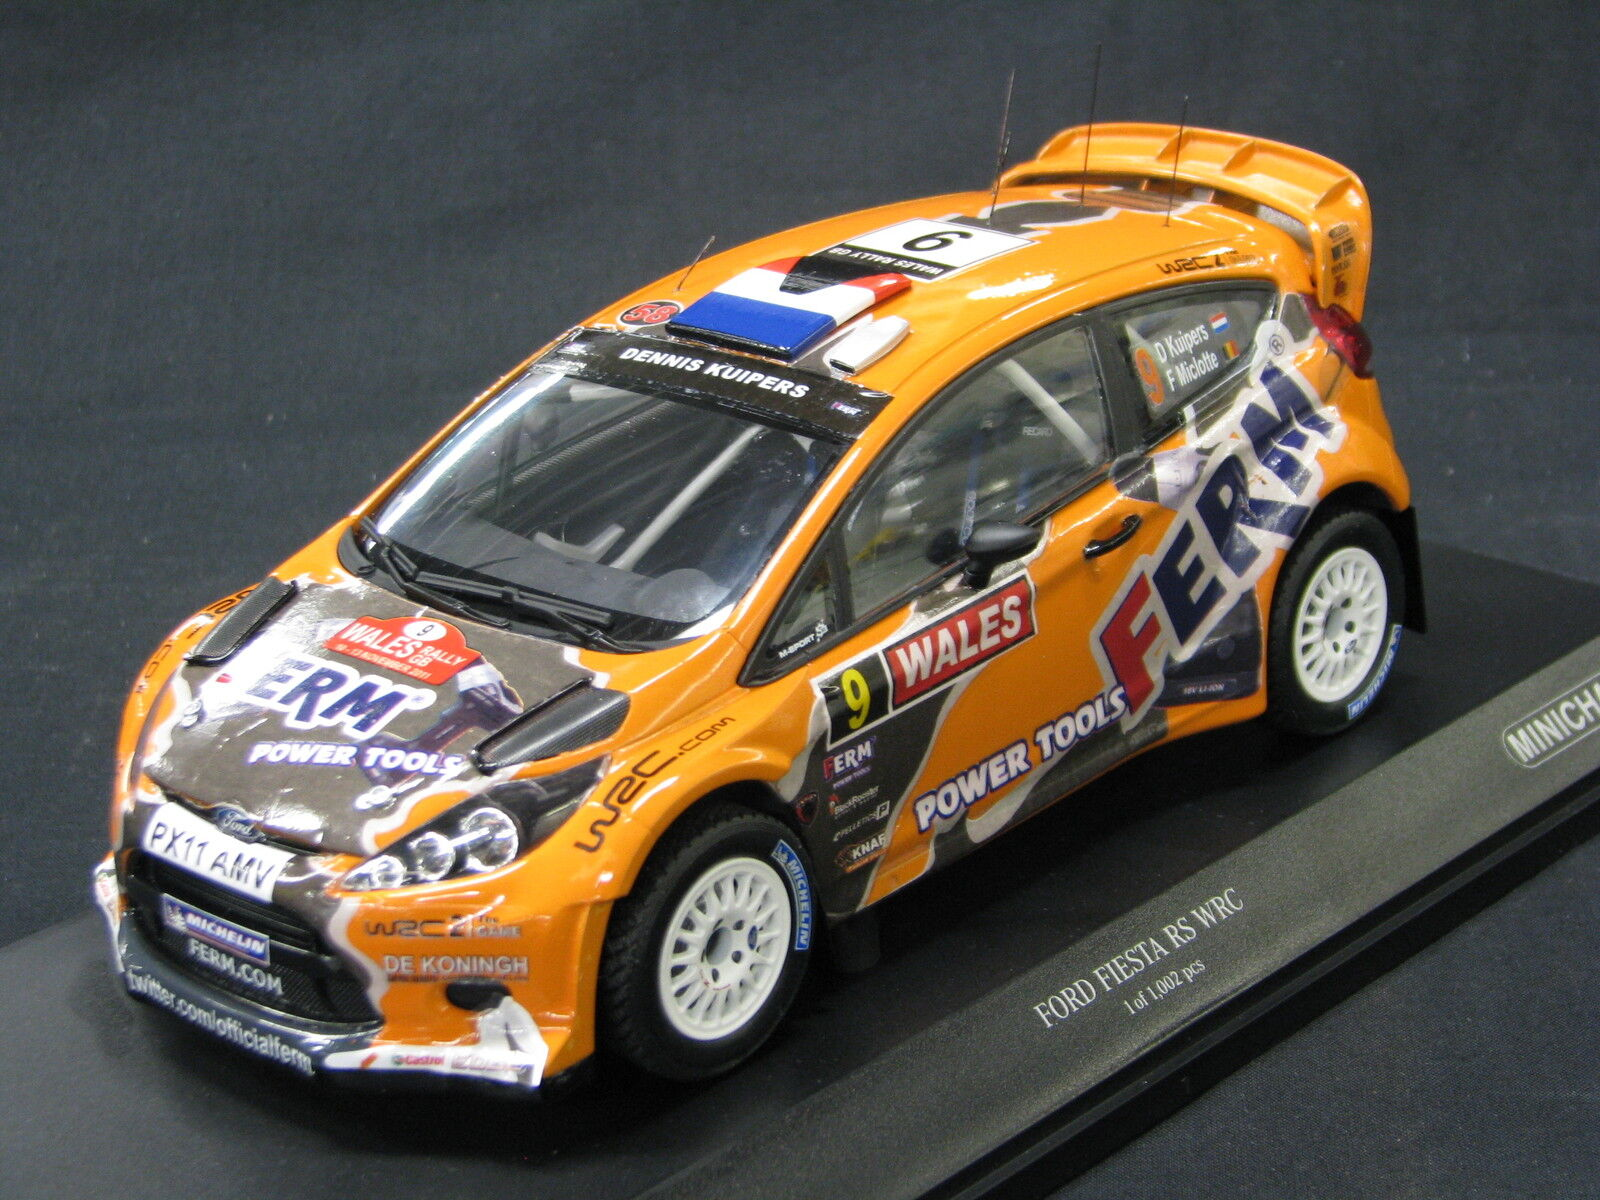 Minichamps Ford Fiesta RS WRC 2011 1 18  9 Kuipers   Miclotte Wales Rally (MCC)